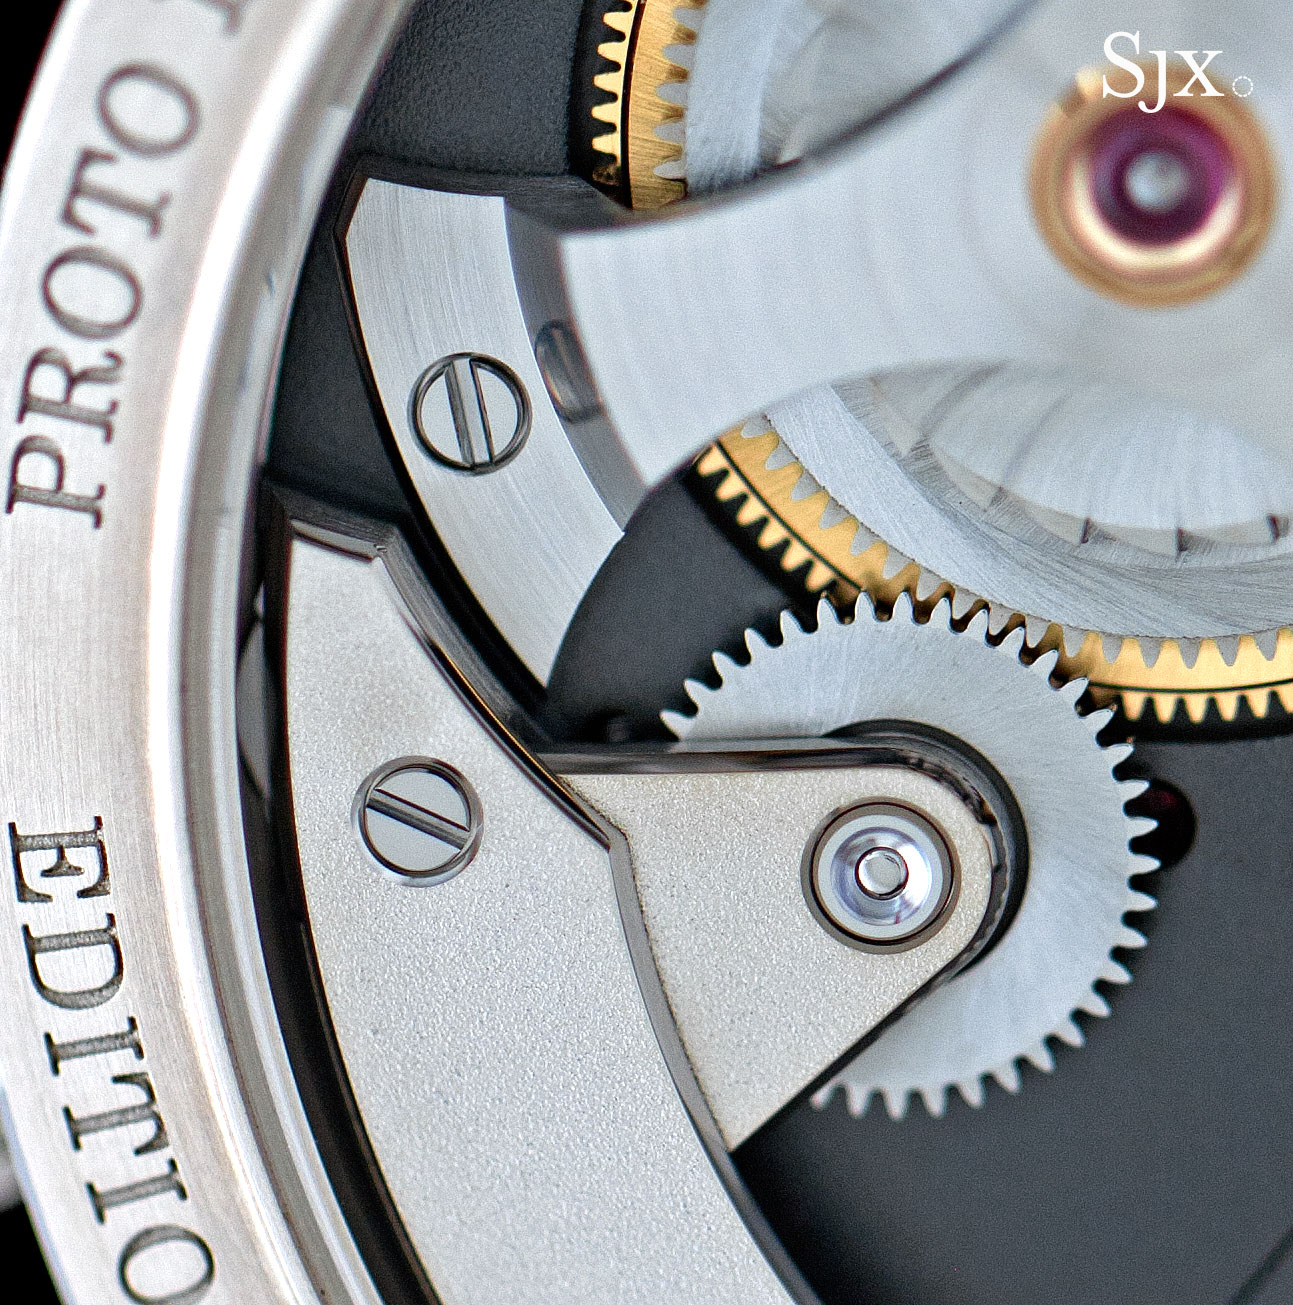 Greubel Forsey Signature 1 stainless steel 10